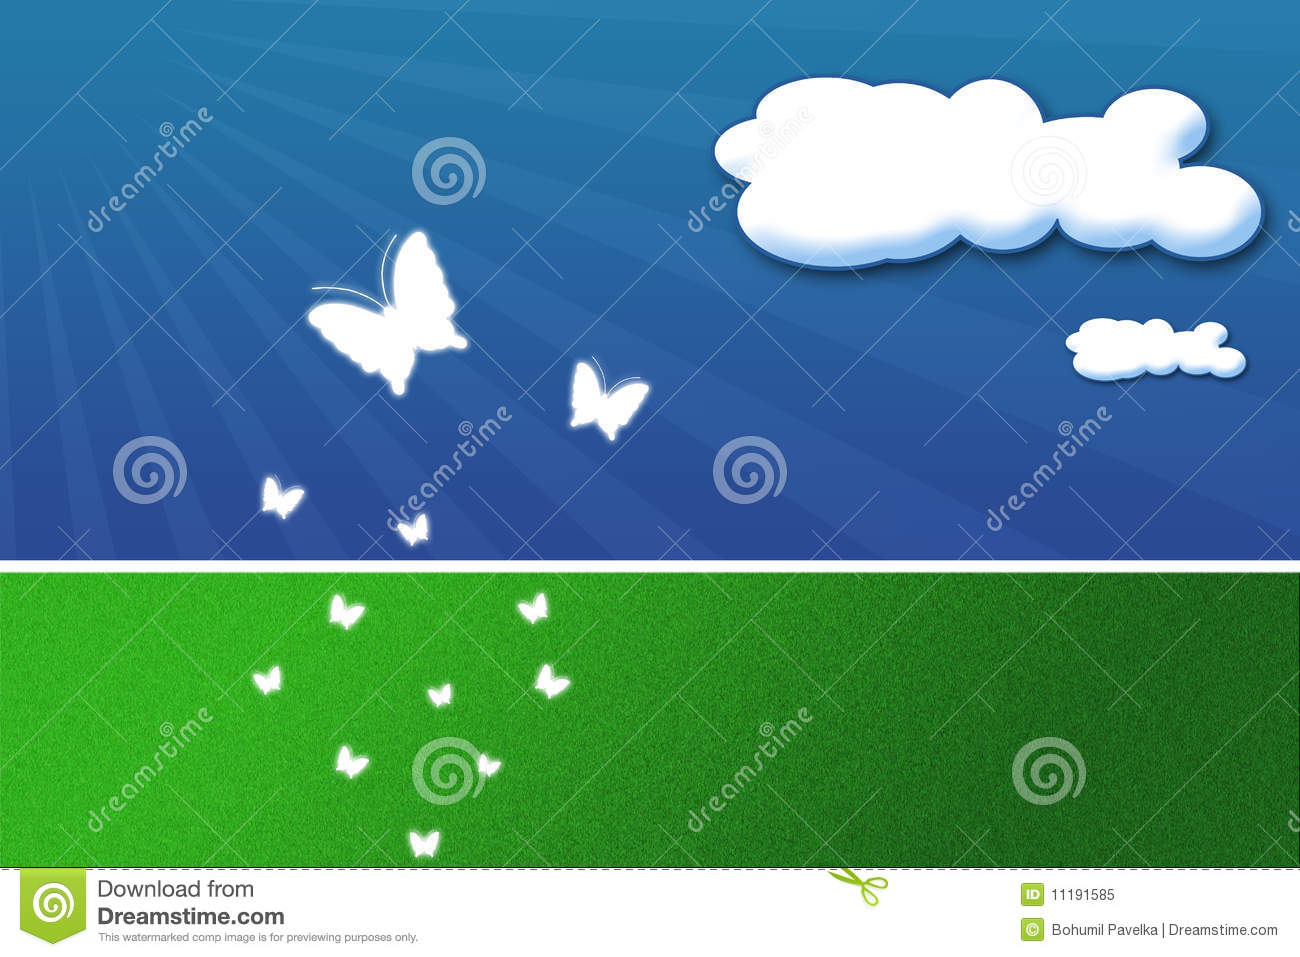 Butterfly Background Royalty Free Stock Photo   Image: 11191585 Wallpaper